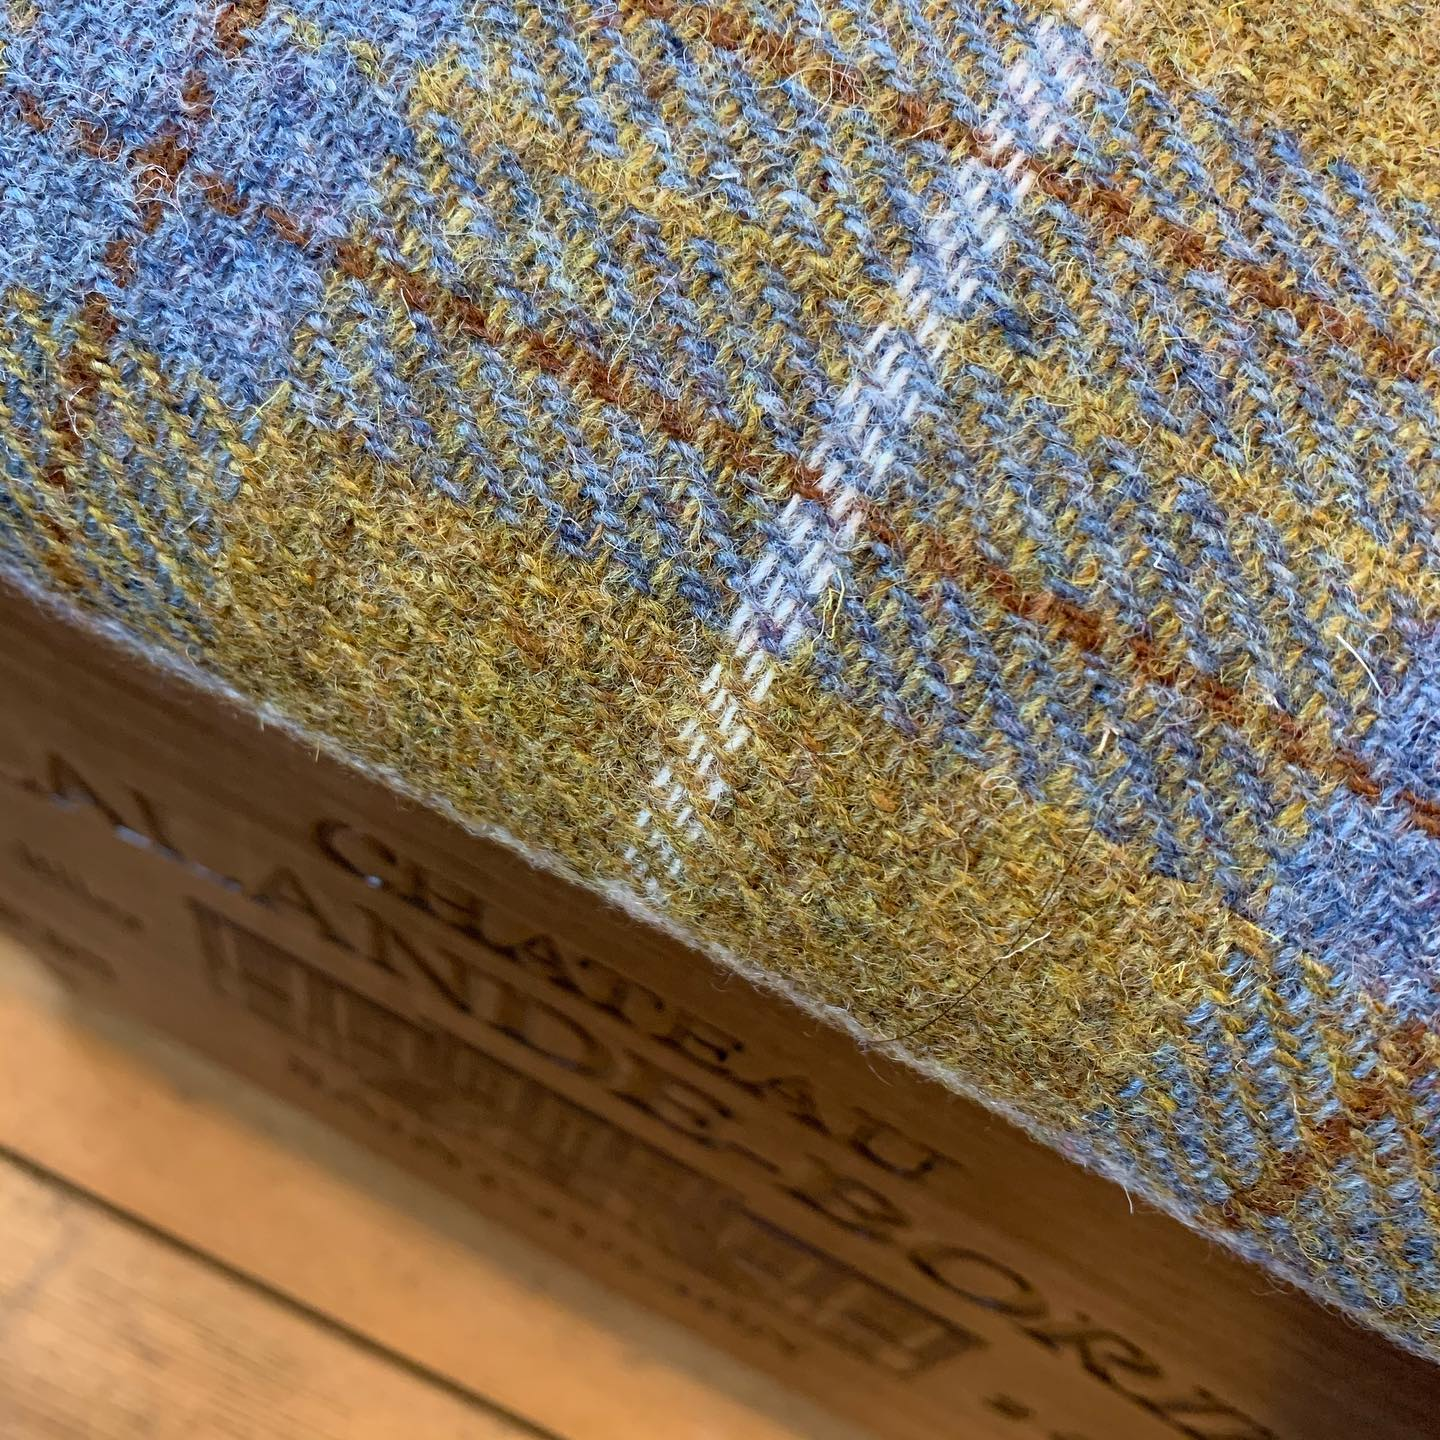 This Harris Tweed ottoman has to be one of our favourites to date. We're so pleased with how it's turned out. It should now be settling in nicely to its new home. ...#harristweed #goldandblue #tweed #ottoman #upholstery #footstool #handcrafted #homewares #homedecor #livingroomdecor #room #storage #check #beautifulfabric #traditional #cottagelife #countryside